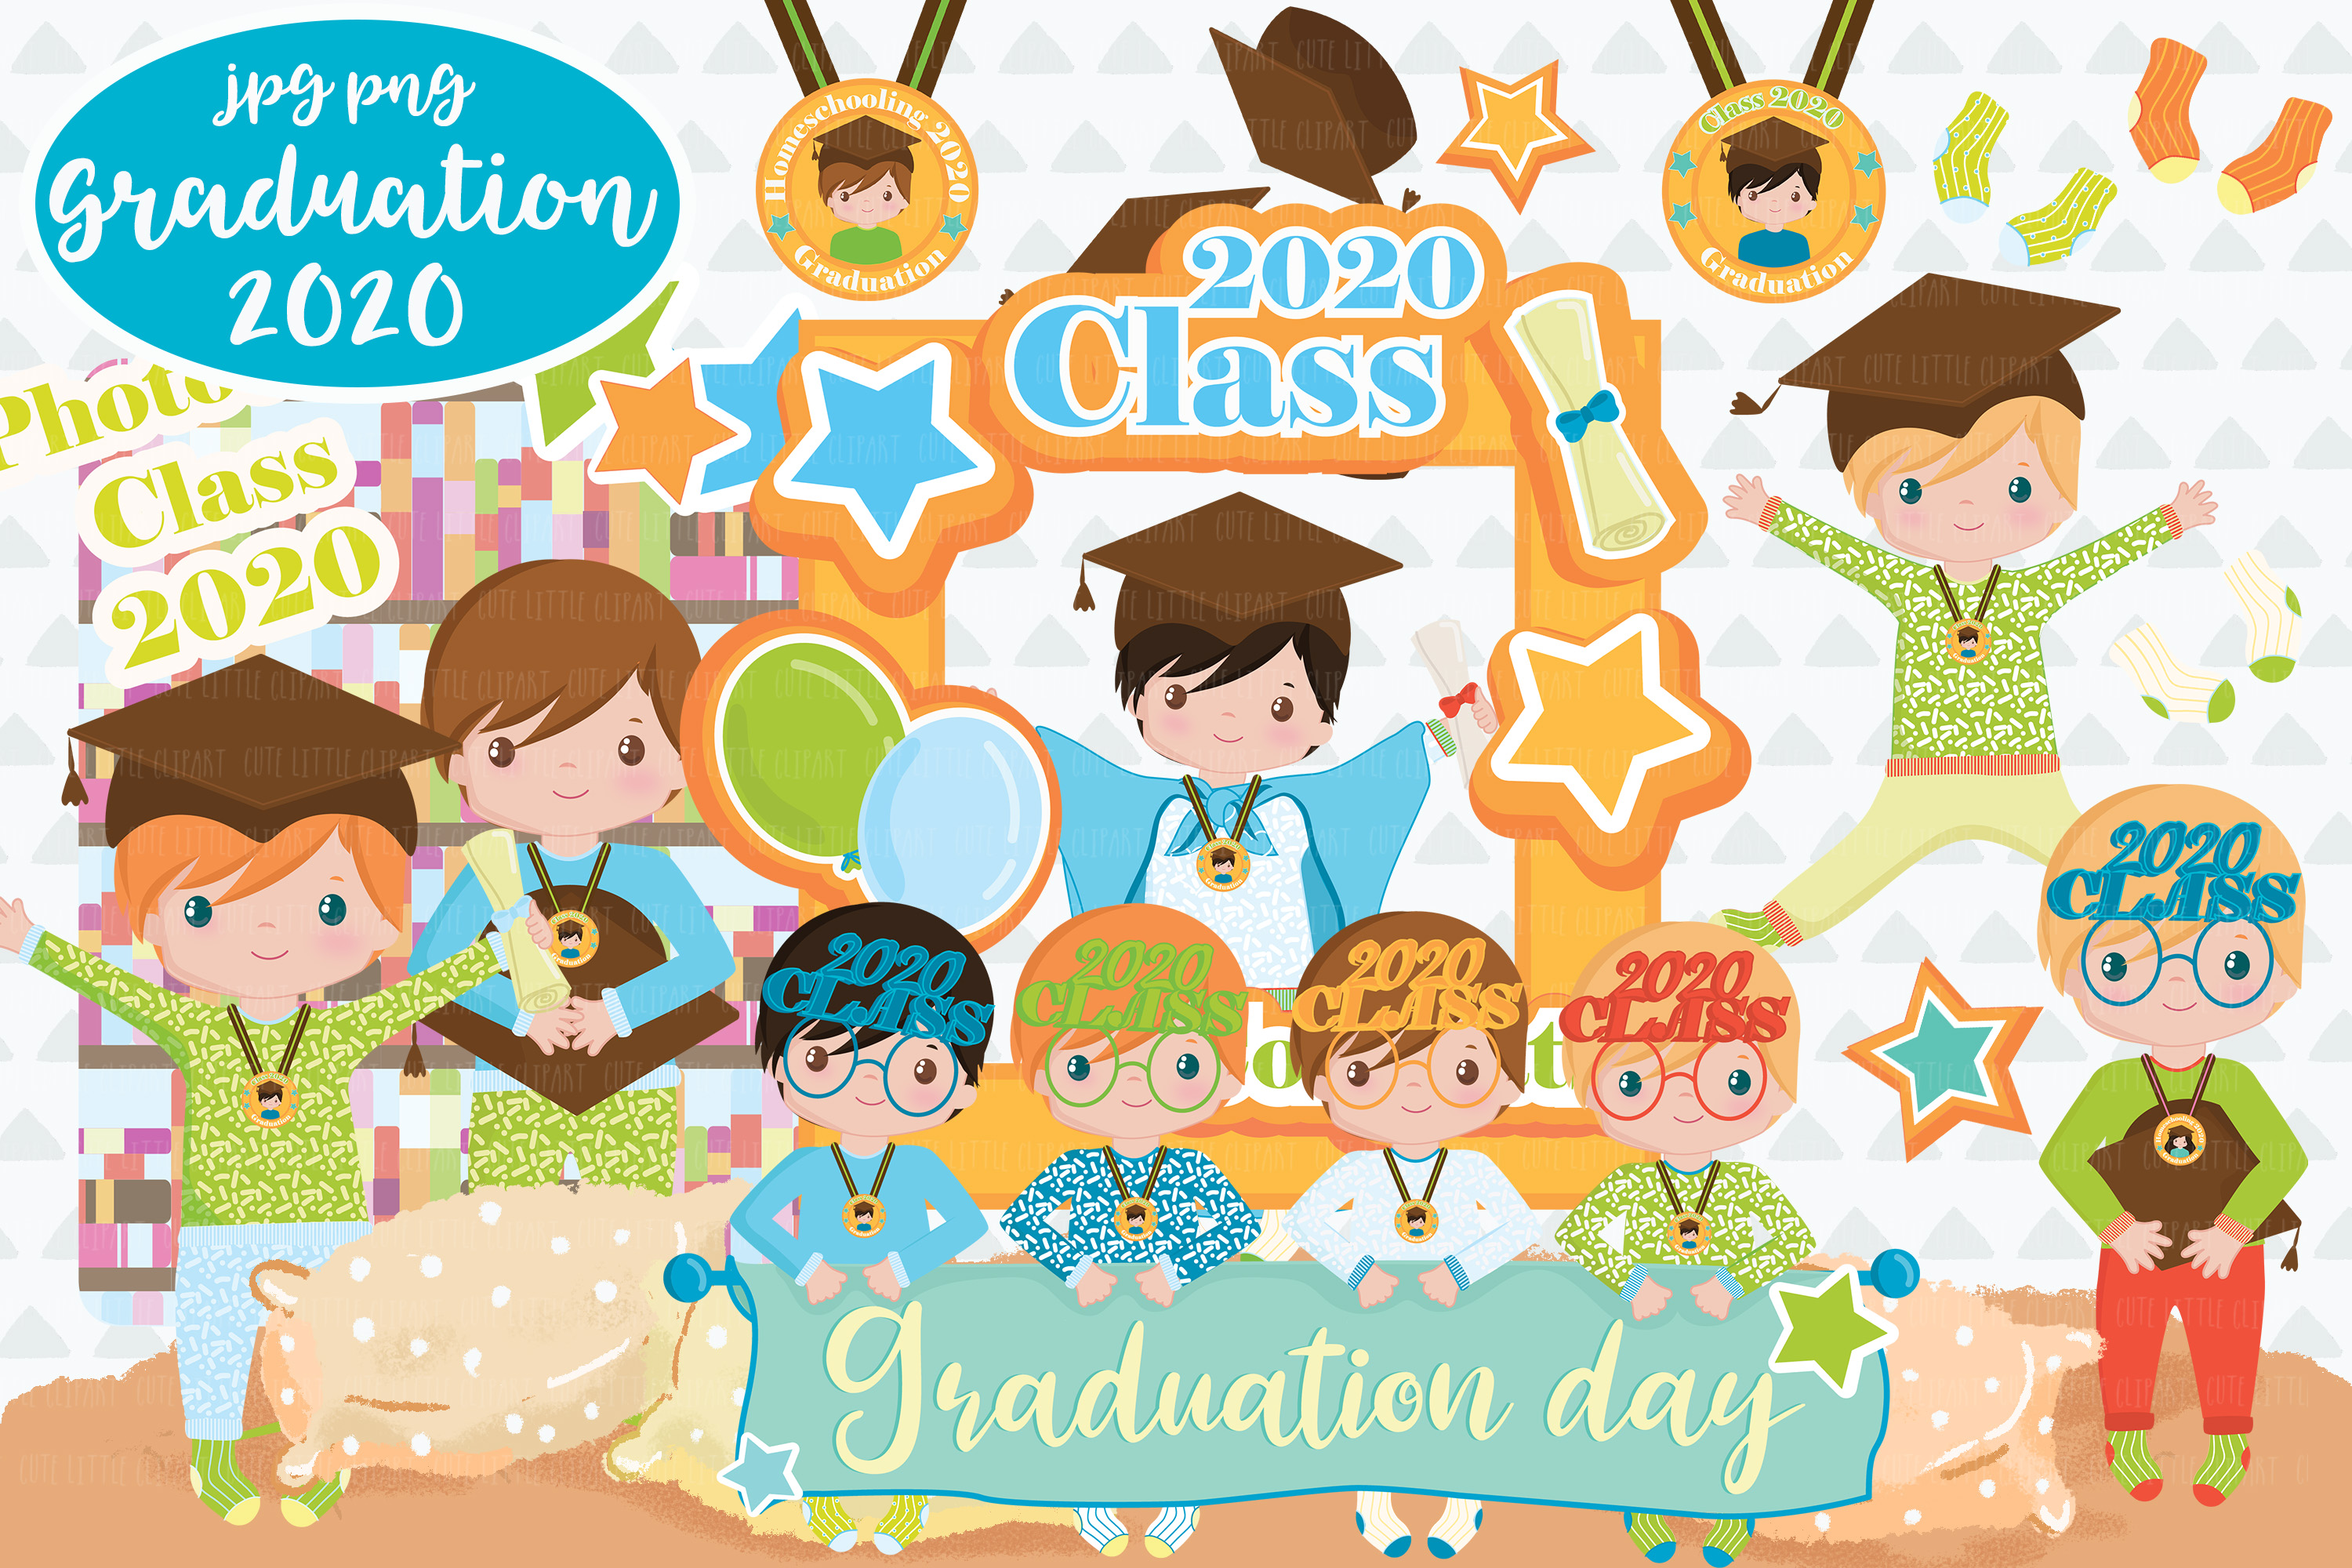 Download Free Graduation Boys 2020 Clipart Graphic By Cutelittleclipart for Cricut Explore, Silhouette and other cutting machines.